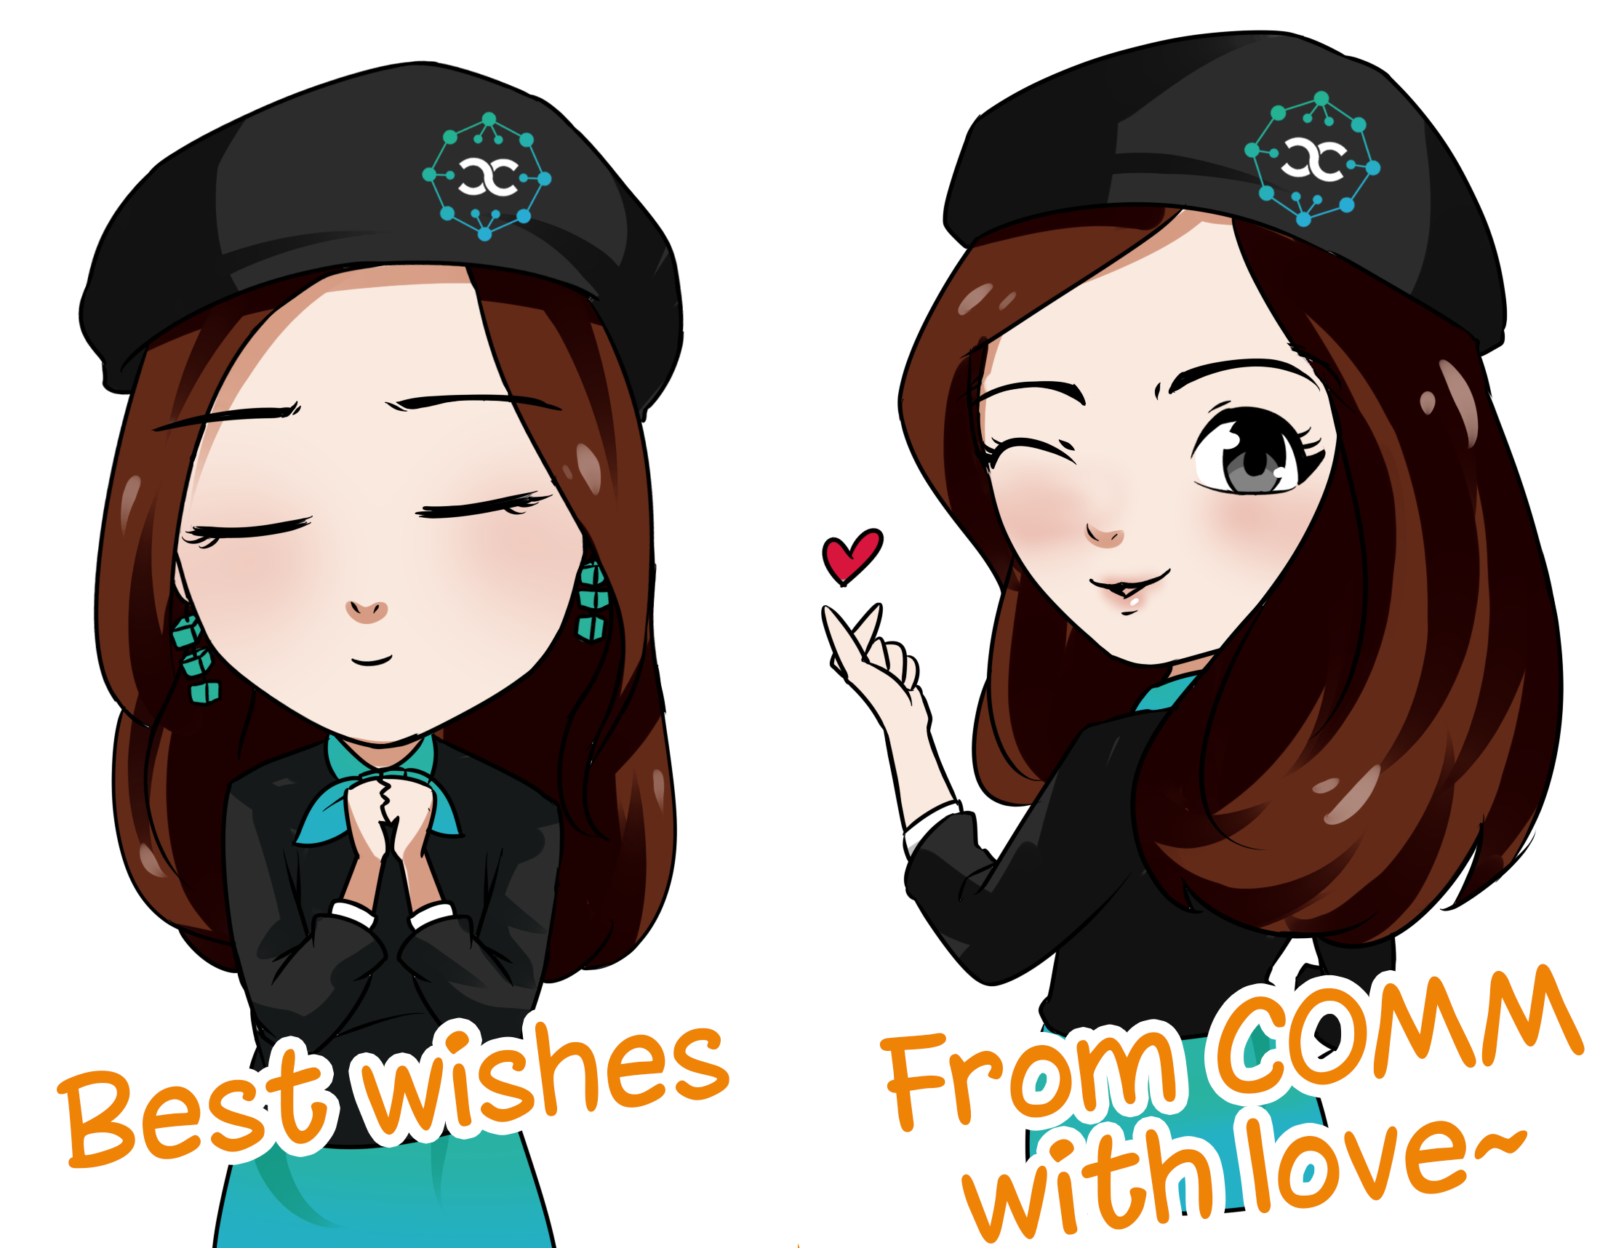 COMM best_wishes